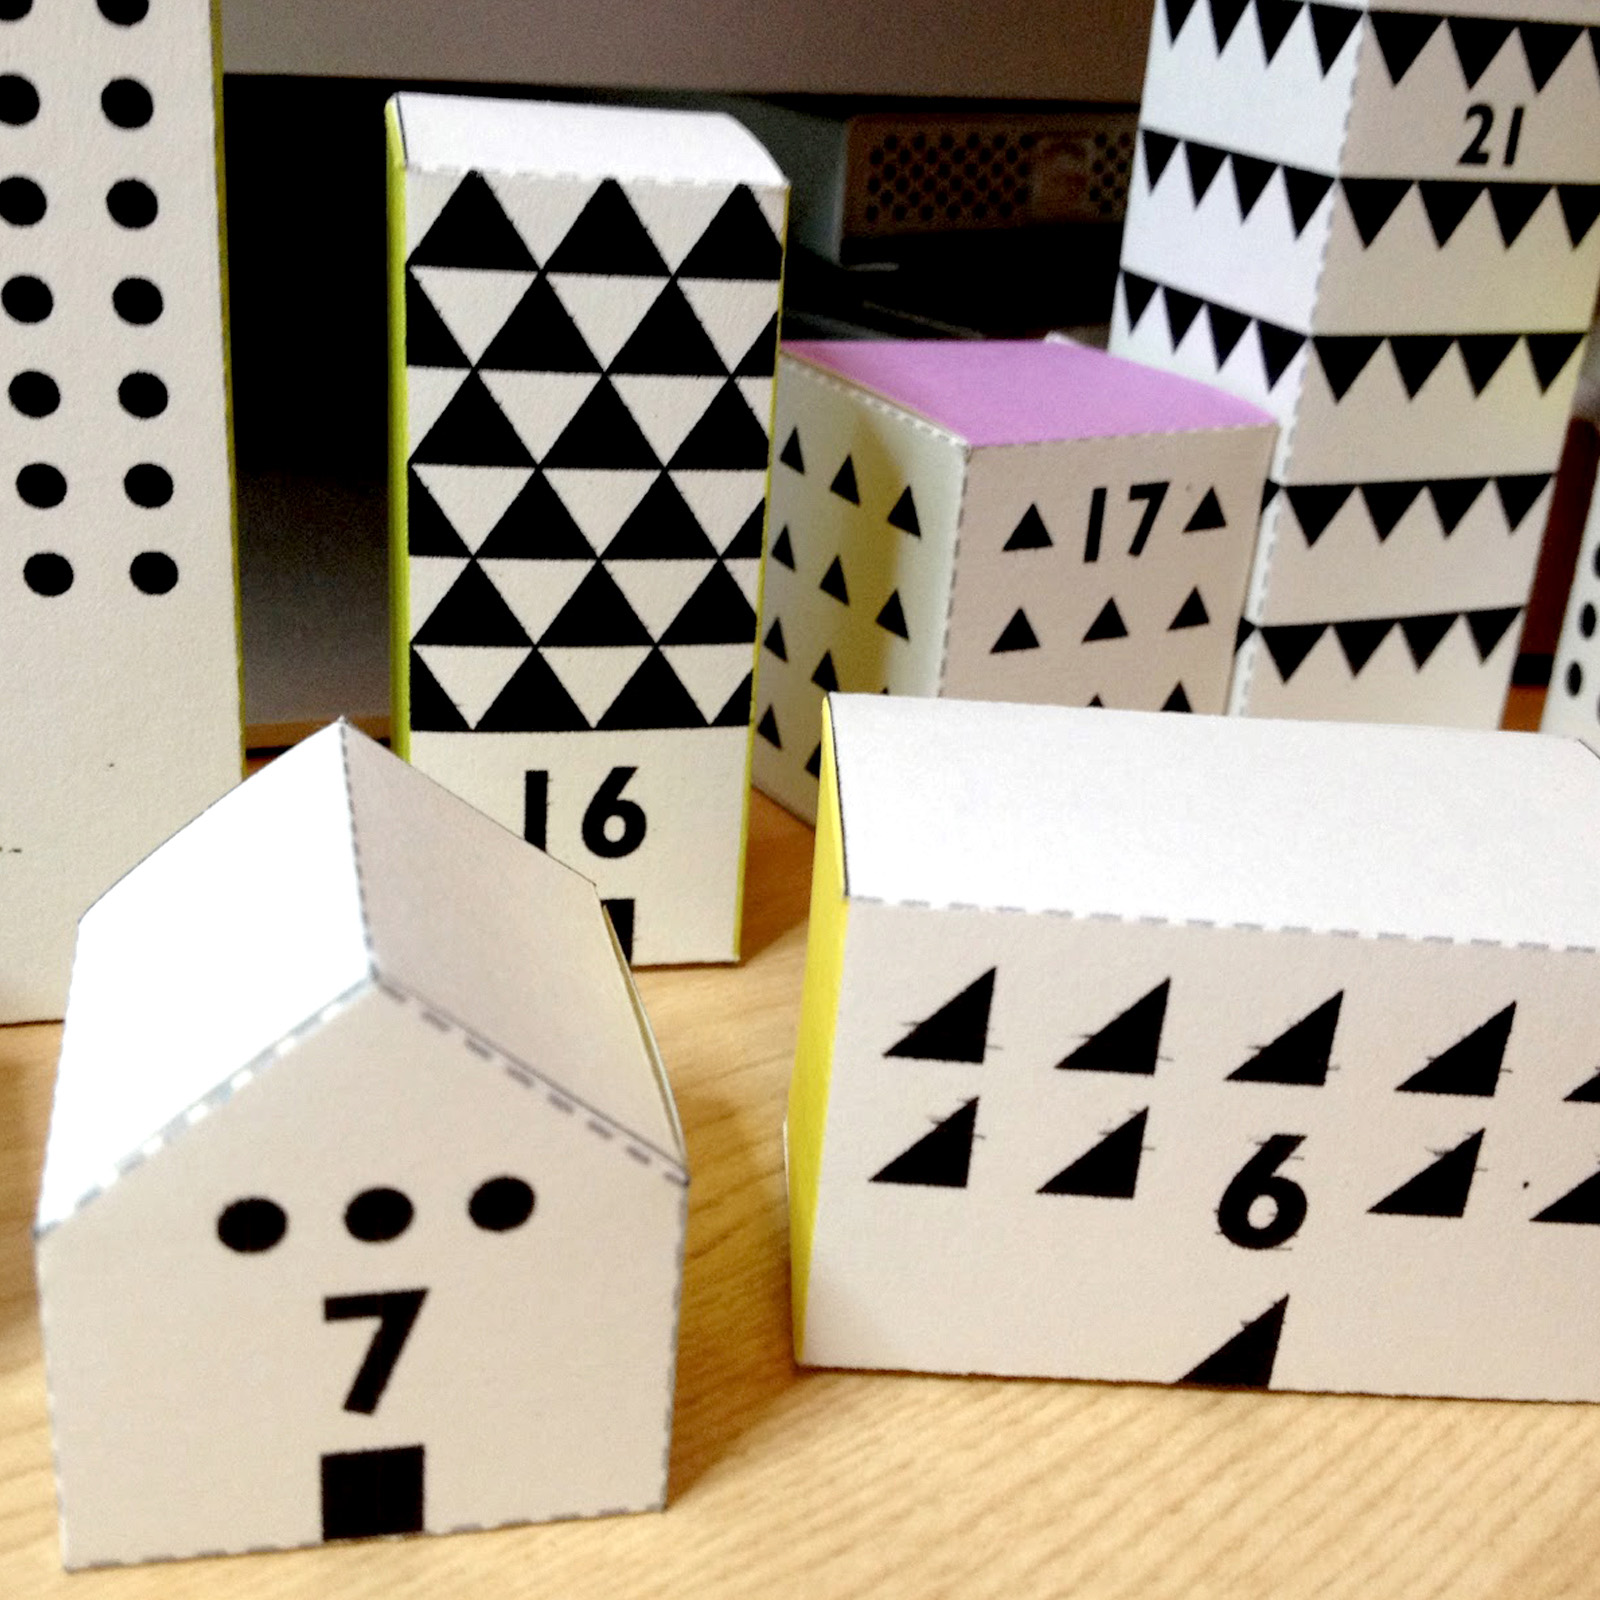 GE_20121115-PAPER-DIY-CRAFT-Here-Comes-Sant-Claus-Advent-Calendar_4